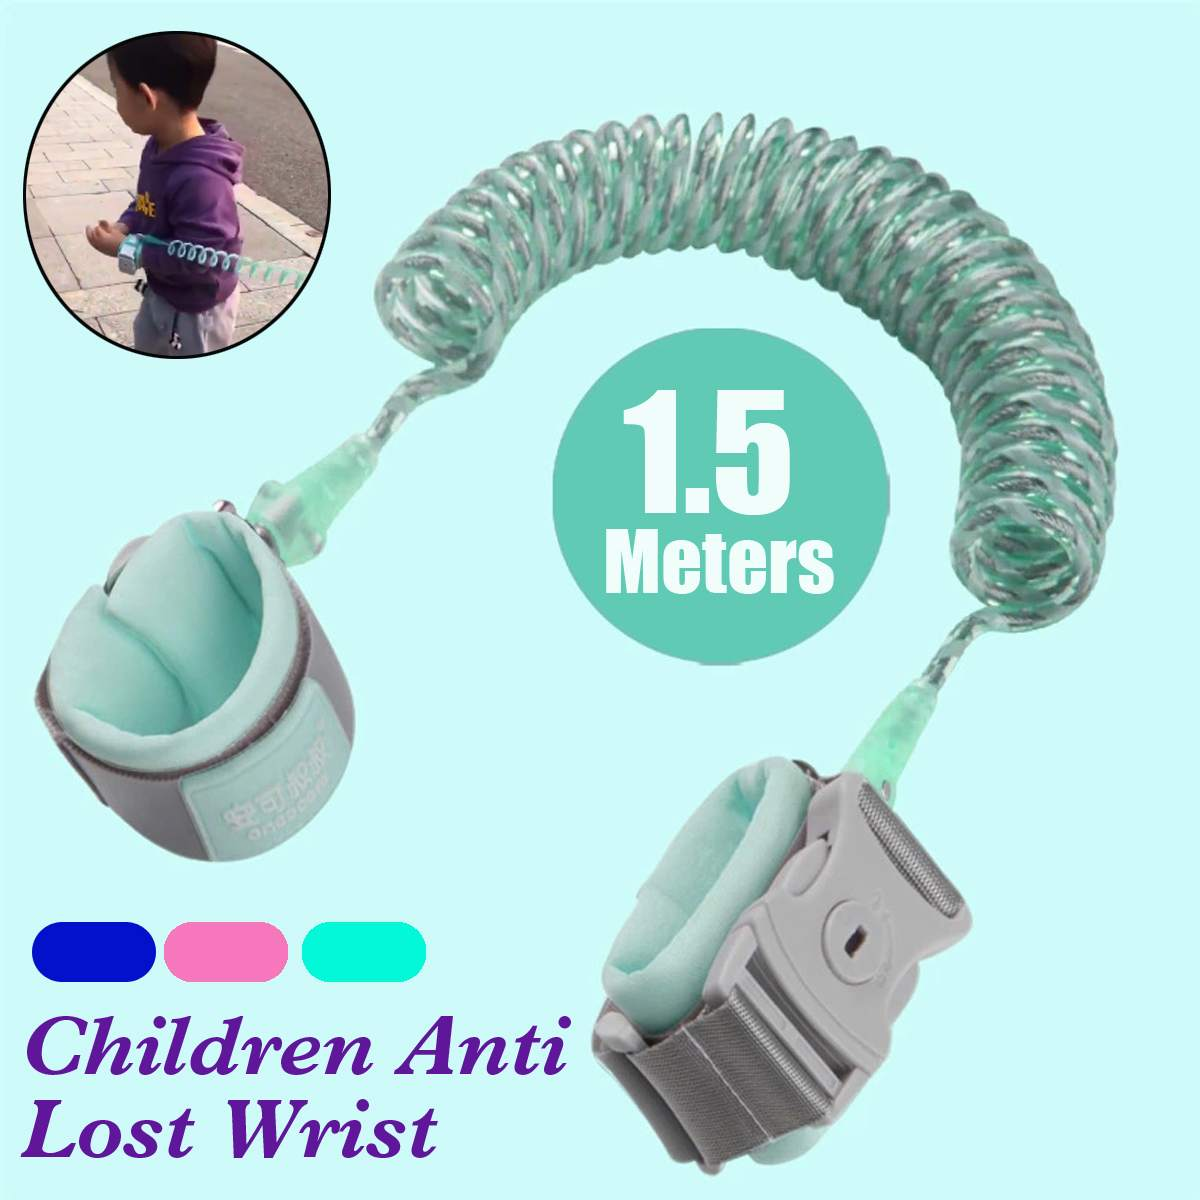 Newest 1.5M Child Anti Lost Wrist Strap Rope Toddler Leash Magnetic Safety Outdoor Walking Hand Belt Band Anti-lost Wristband